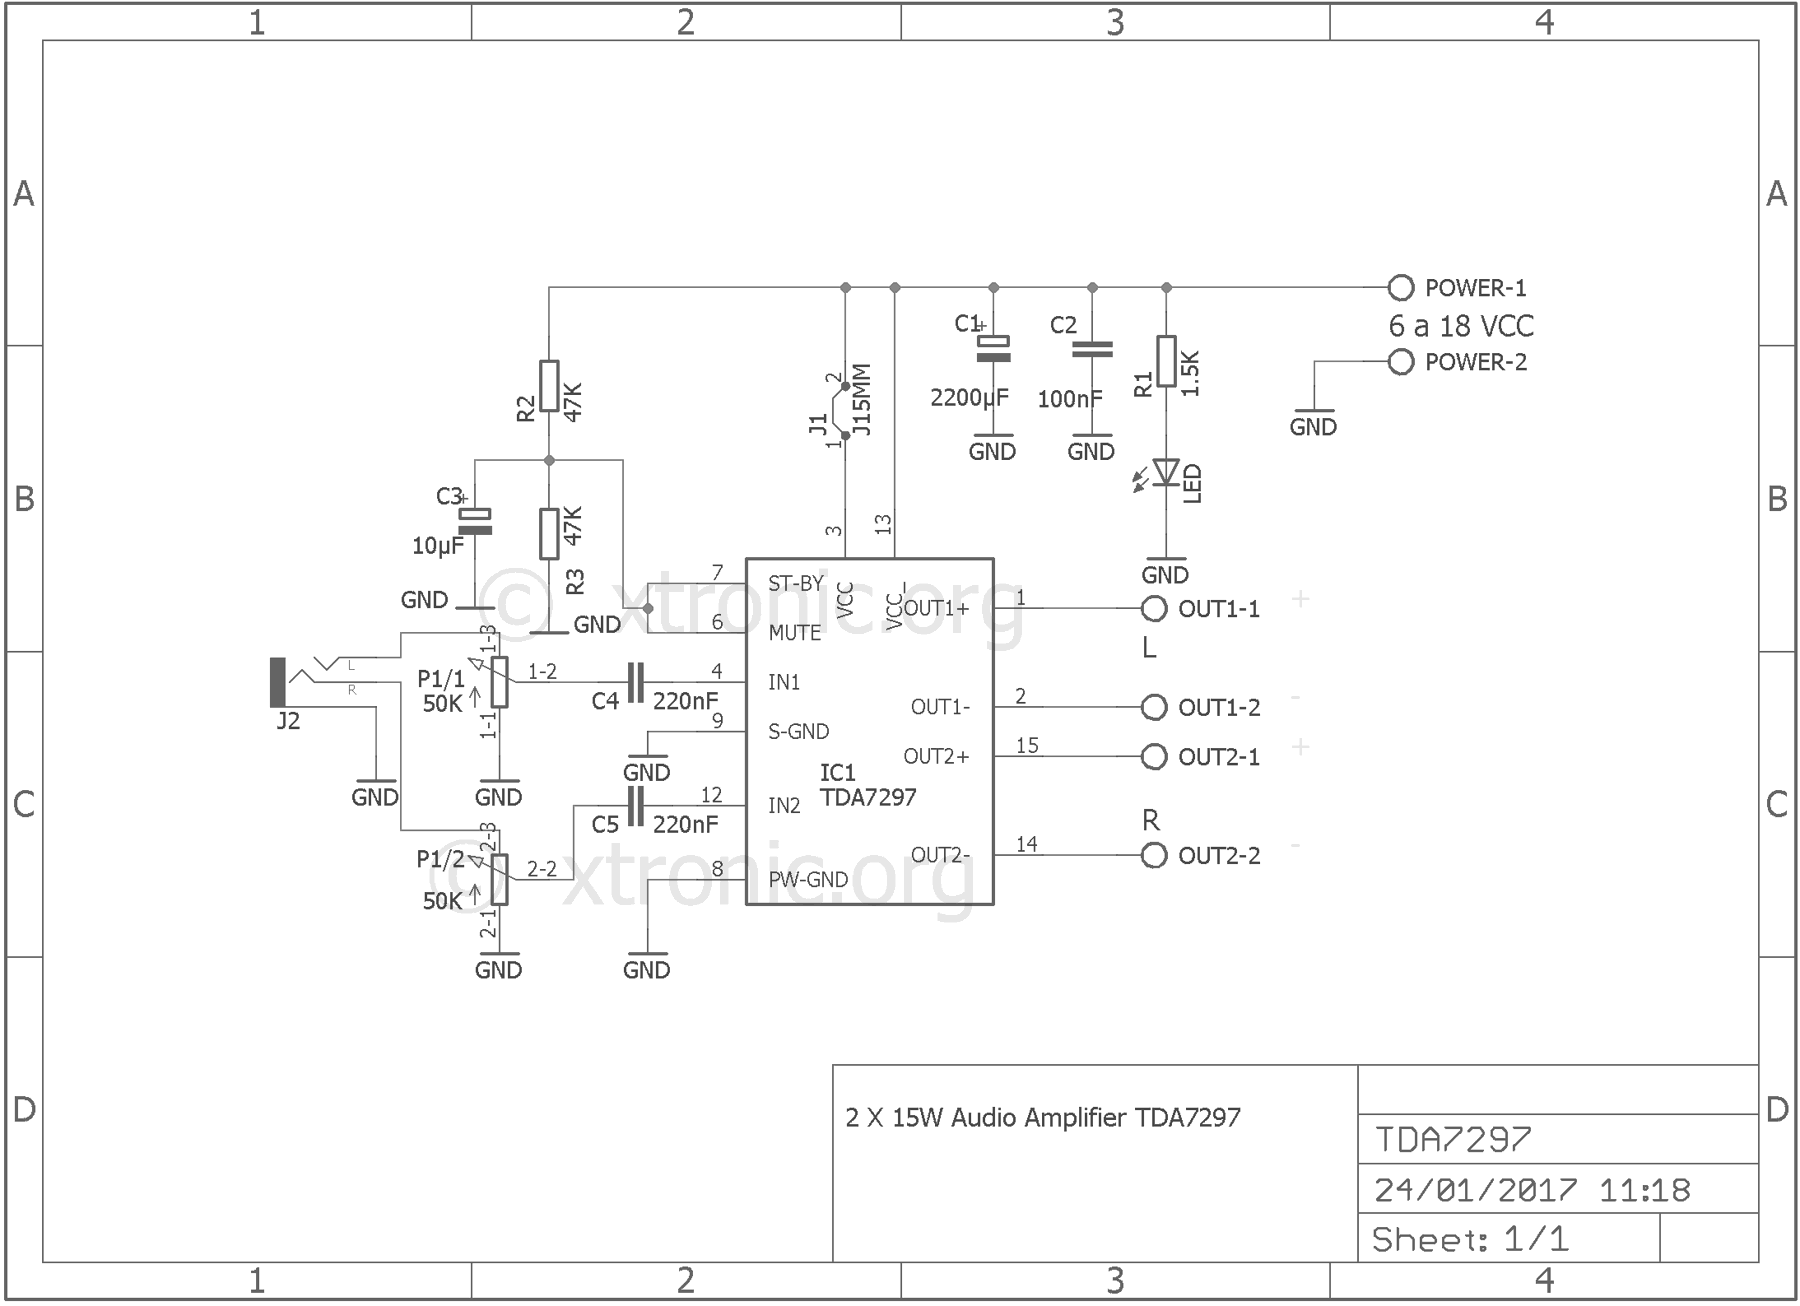 Normal House Wiring Diagram | Wiring Diagram on house framing diagrams, plumbing diagrams, computer diagrams, house electrical, troubleshooting diagrams, microwave ovens diagrams, house floor plans, air conditioning diagrams, hvac diagrams, lighting diagrams, house parts, construction diagrams, refrigeration diagrams, house brochures, ceiling fans diagrams, home diagrams, electrical diagrams, welding diagrams, insulation diagrams,